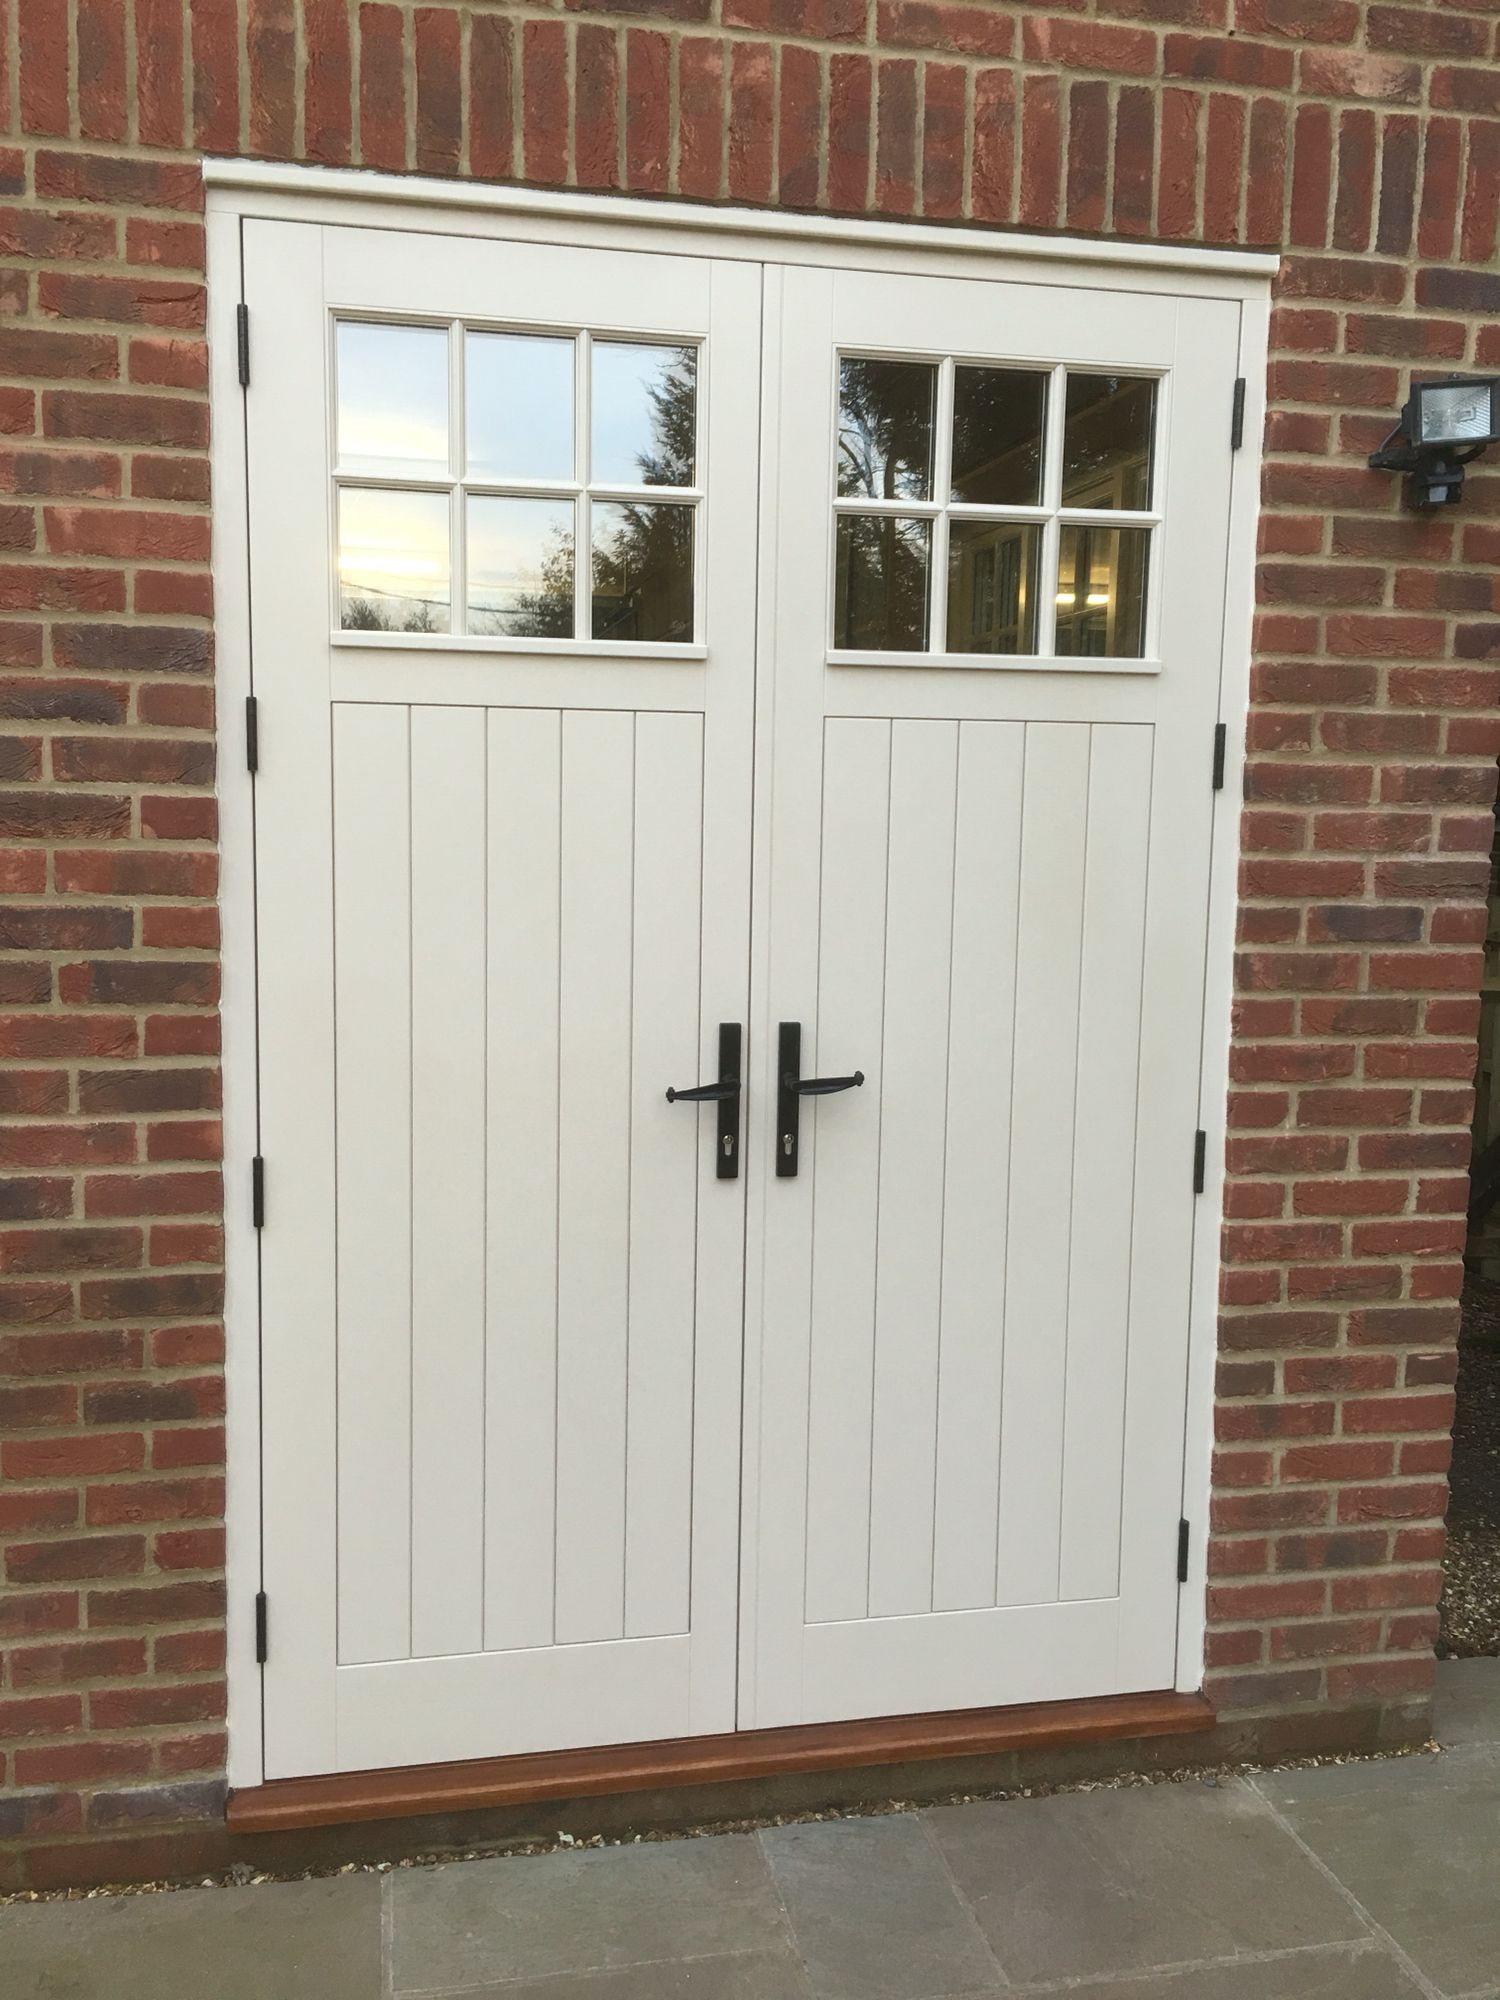 8ft tall double doors for garage rear exit outdoor pinterest 8ft tall double doors for garage rear exit rubansaba